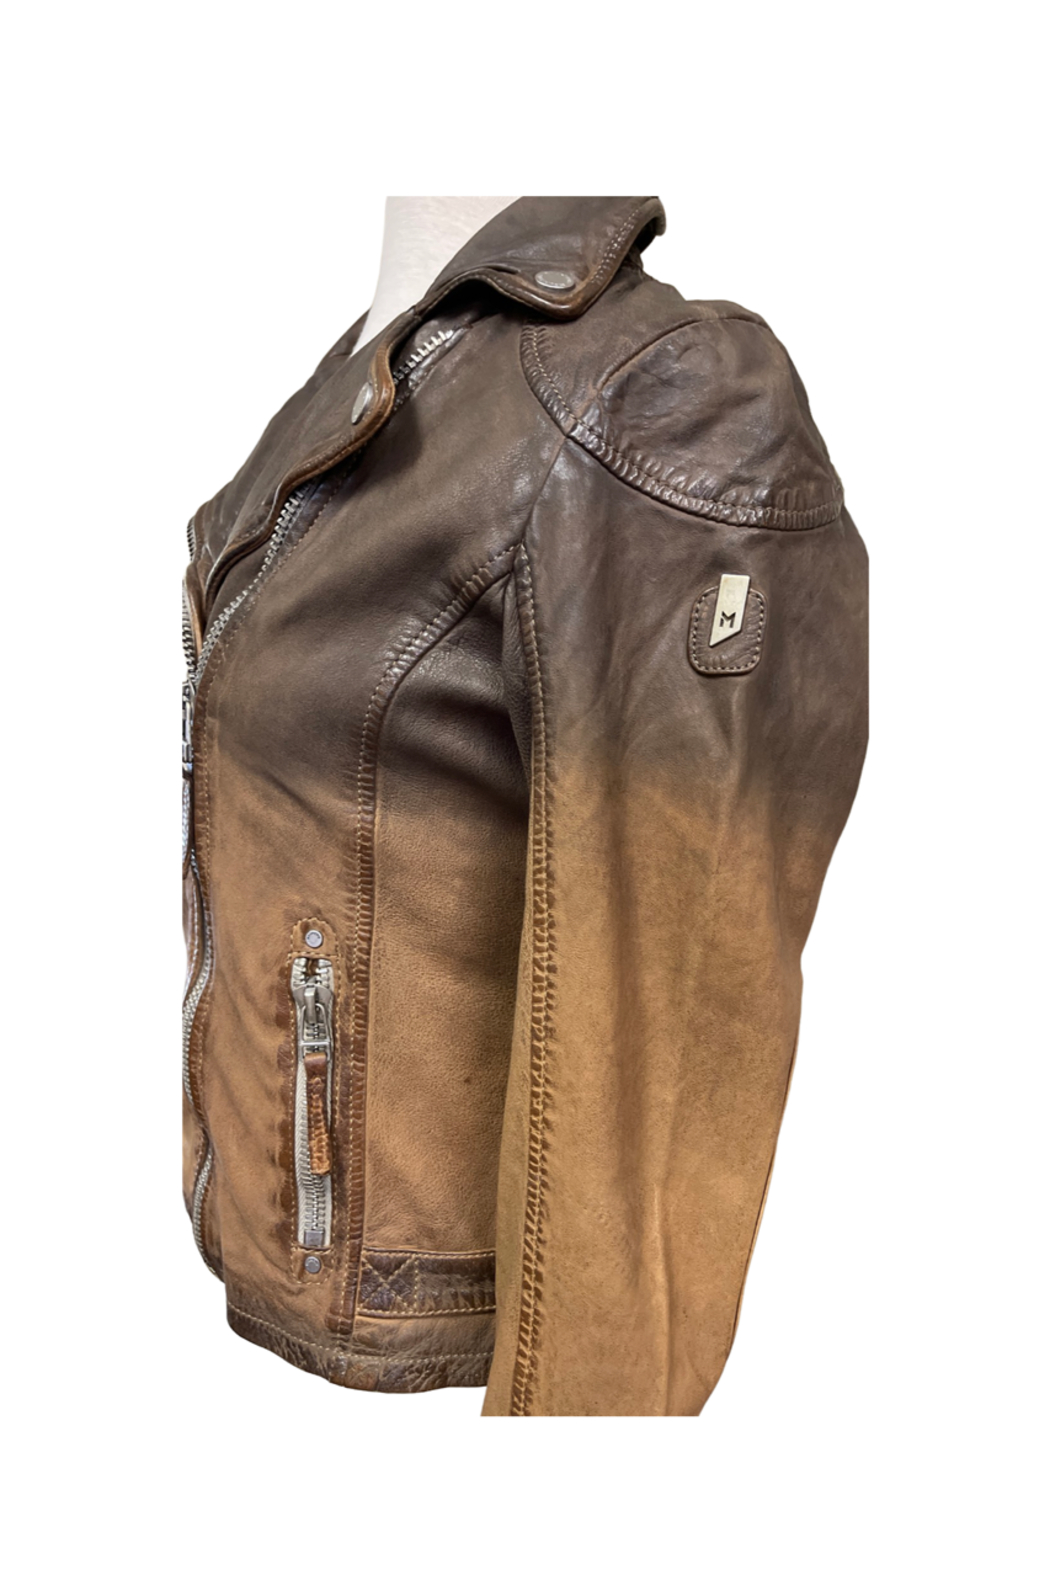 Mauritius Karyn Two Tone Distressed Leather Jacket - Front Full Image